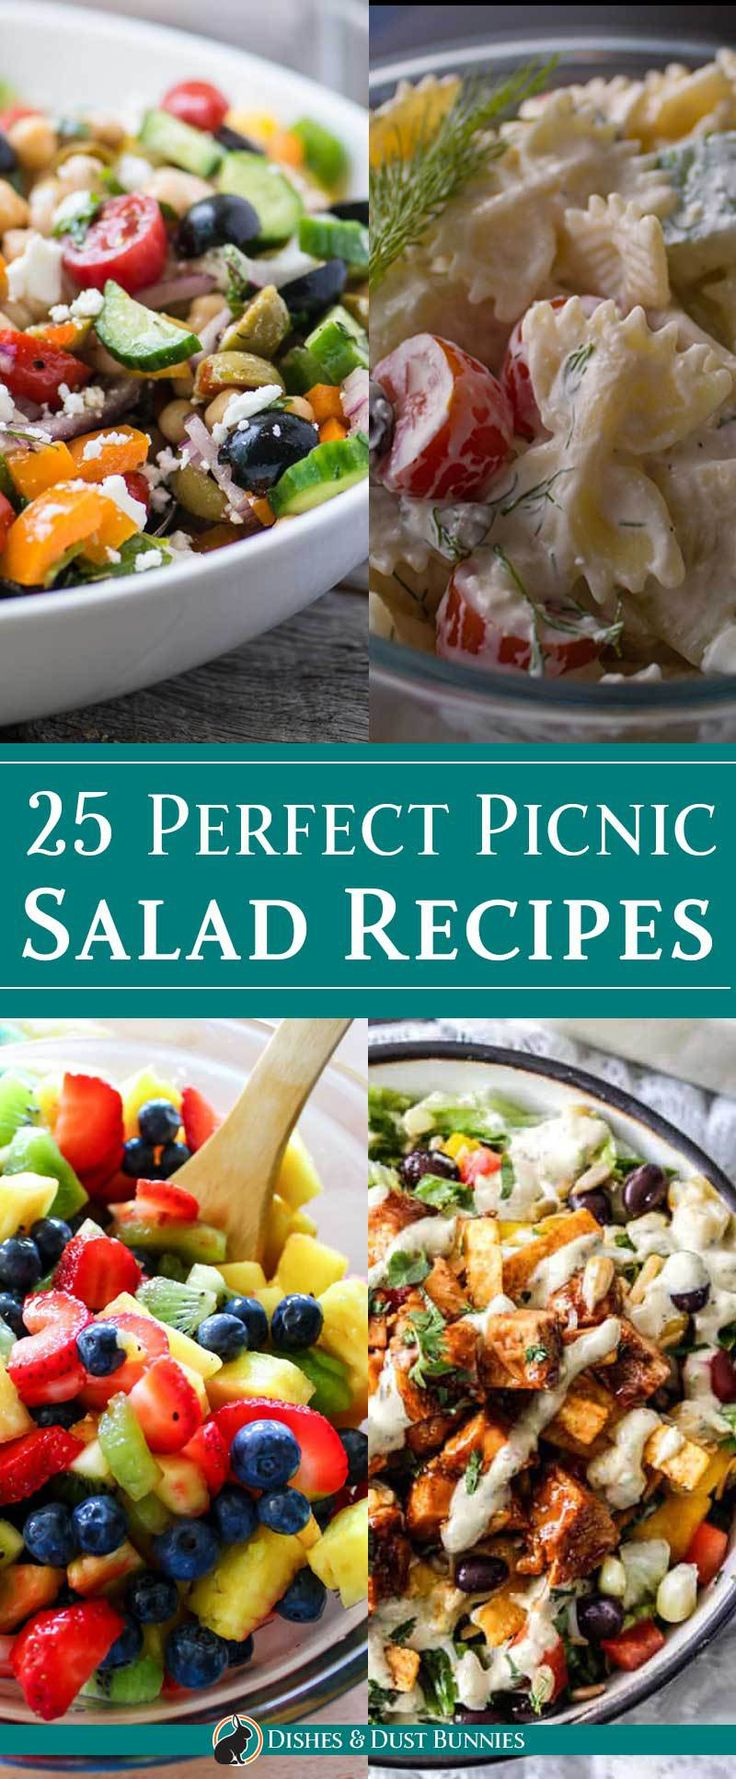 25 Perfect Picnic Salad Recipes from dishesanddust…